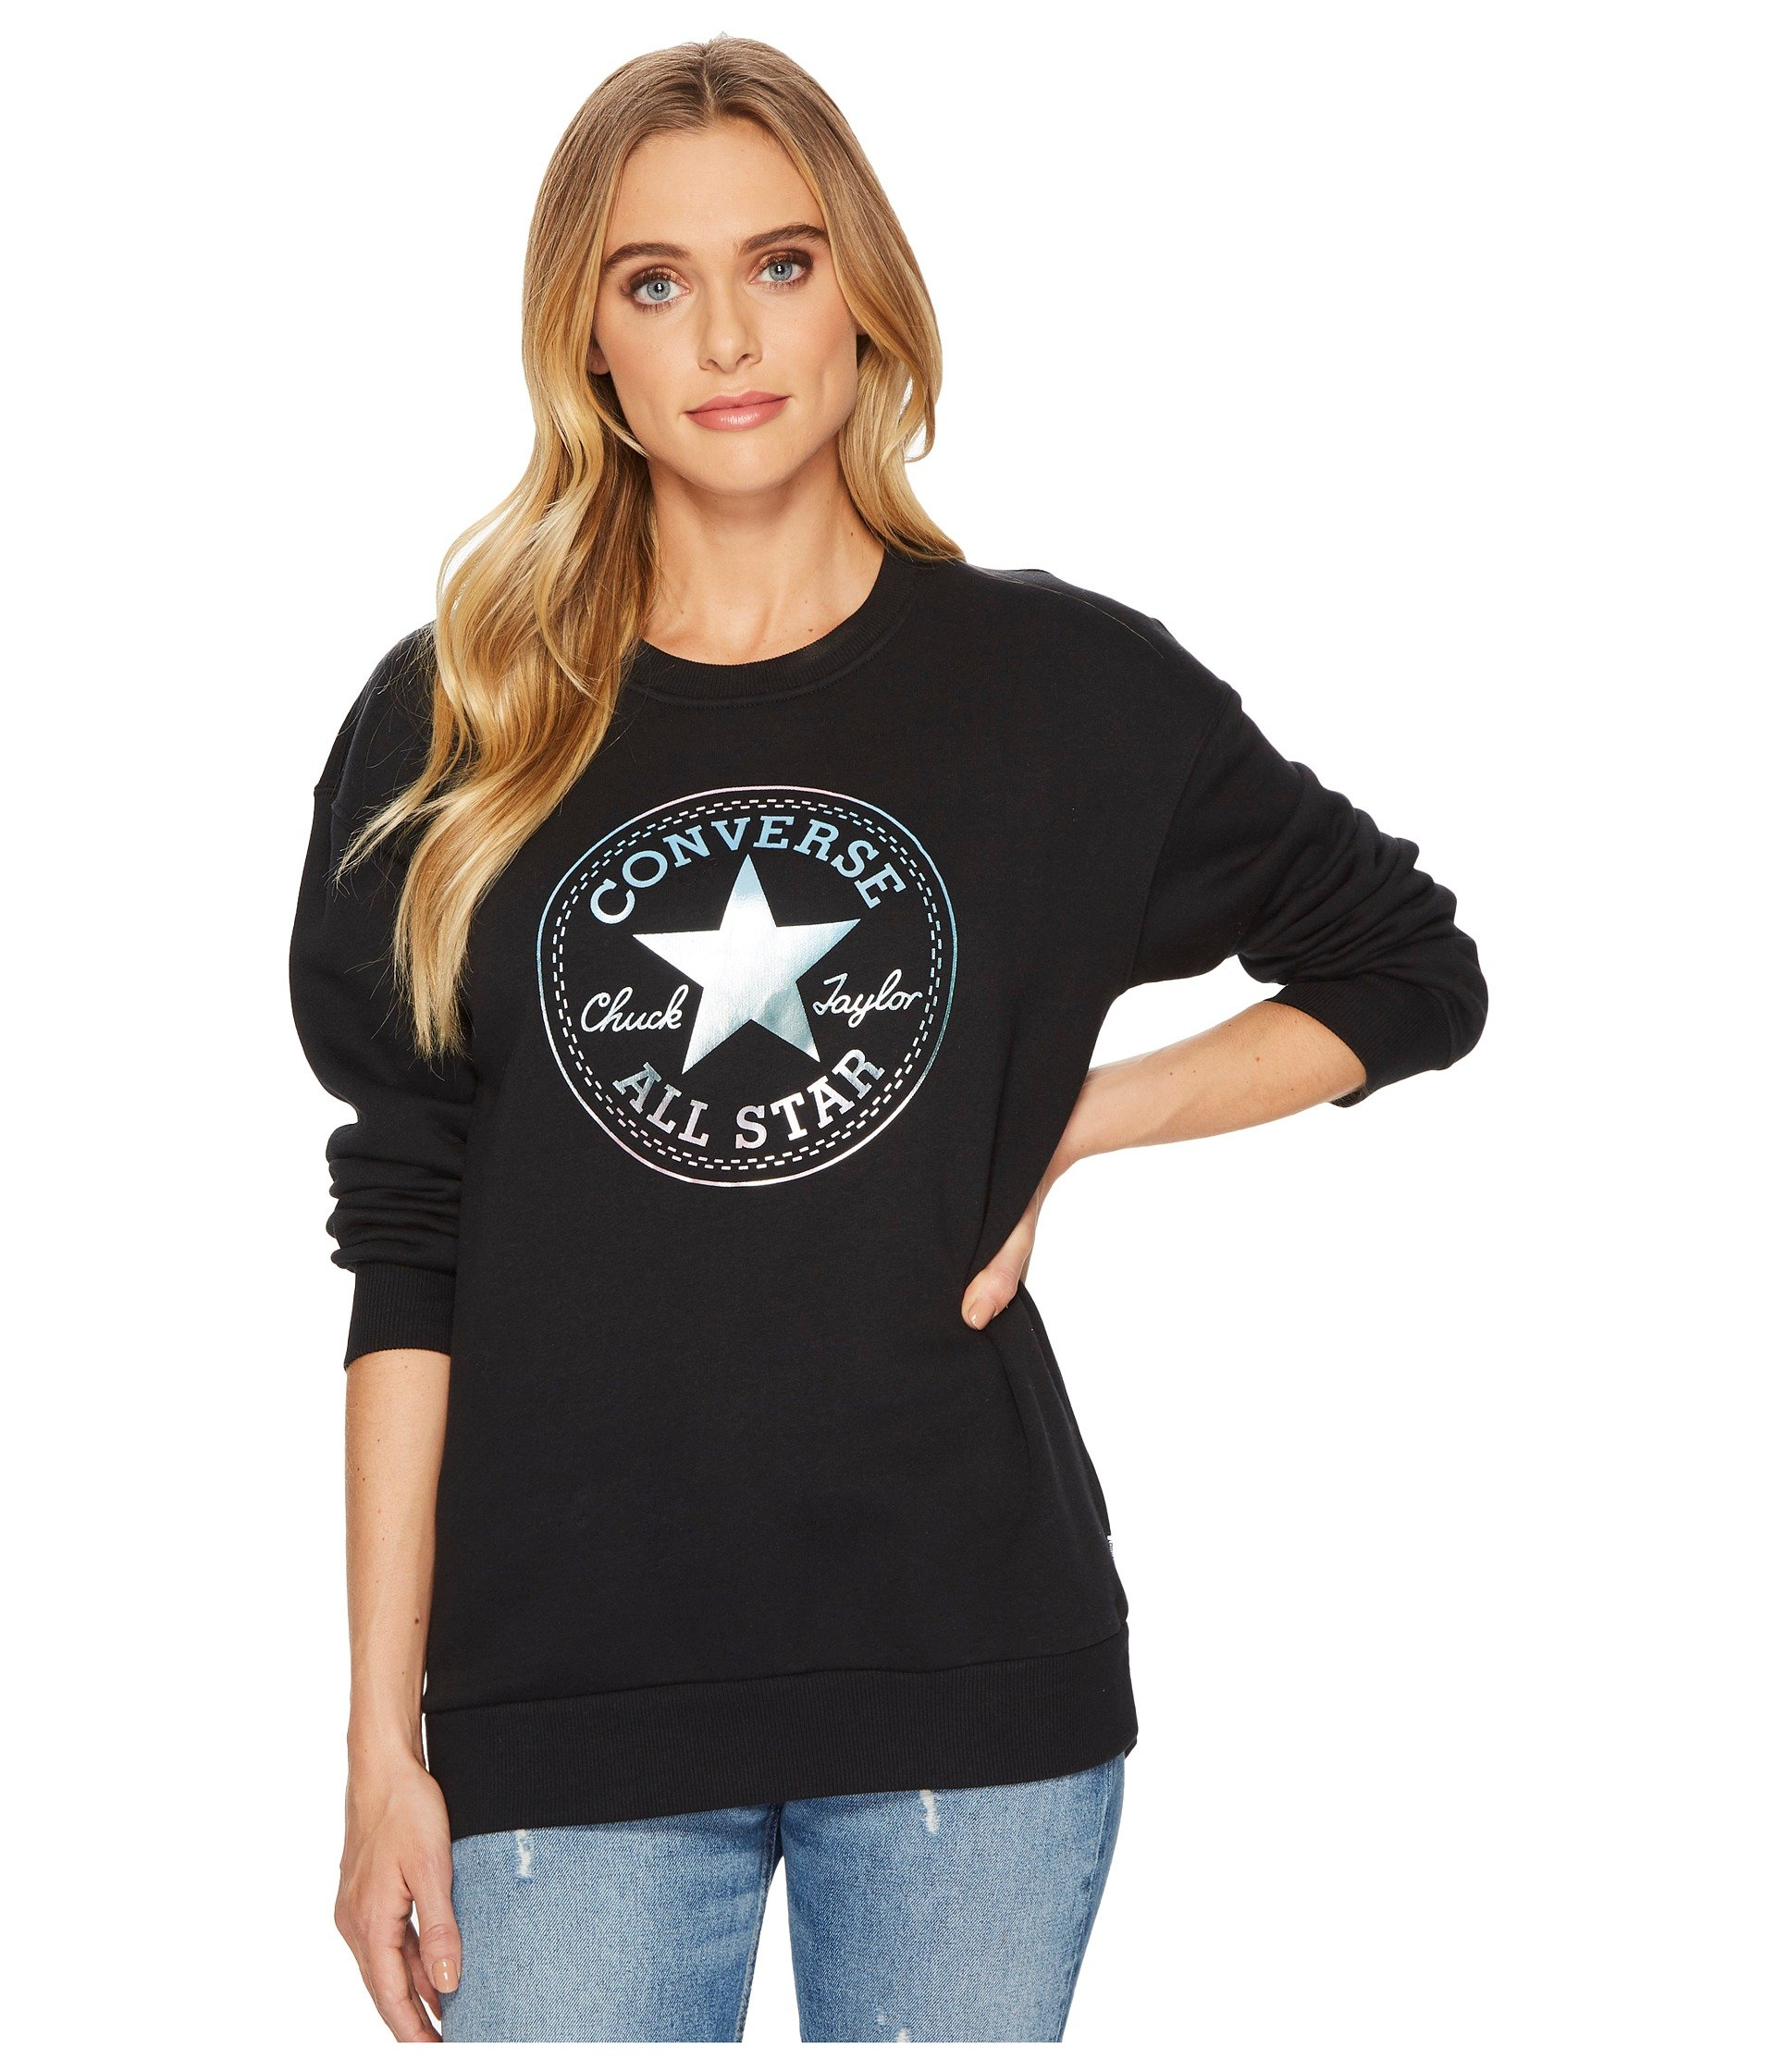 Buzo o Chaqueta para Mujer Converse Shine Pack Graphic Oversized Crew  + Converse en VeoyCompro.net